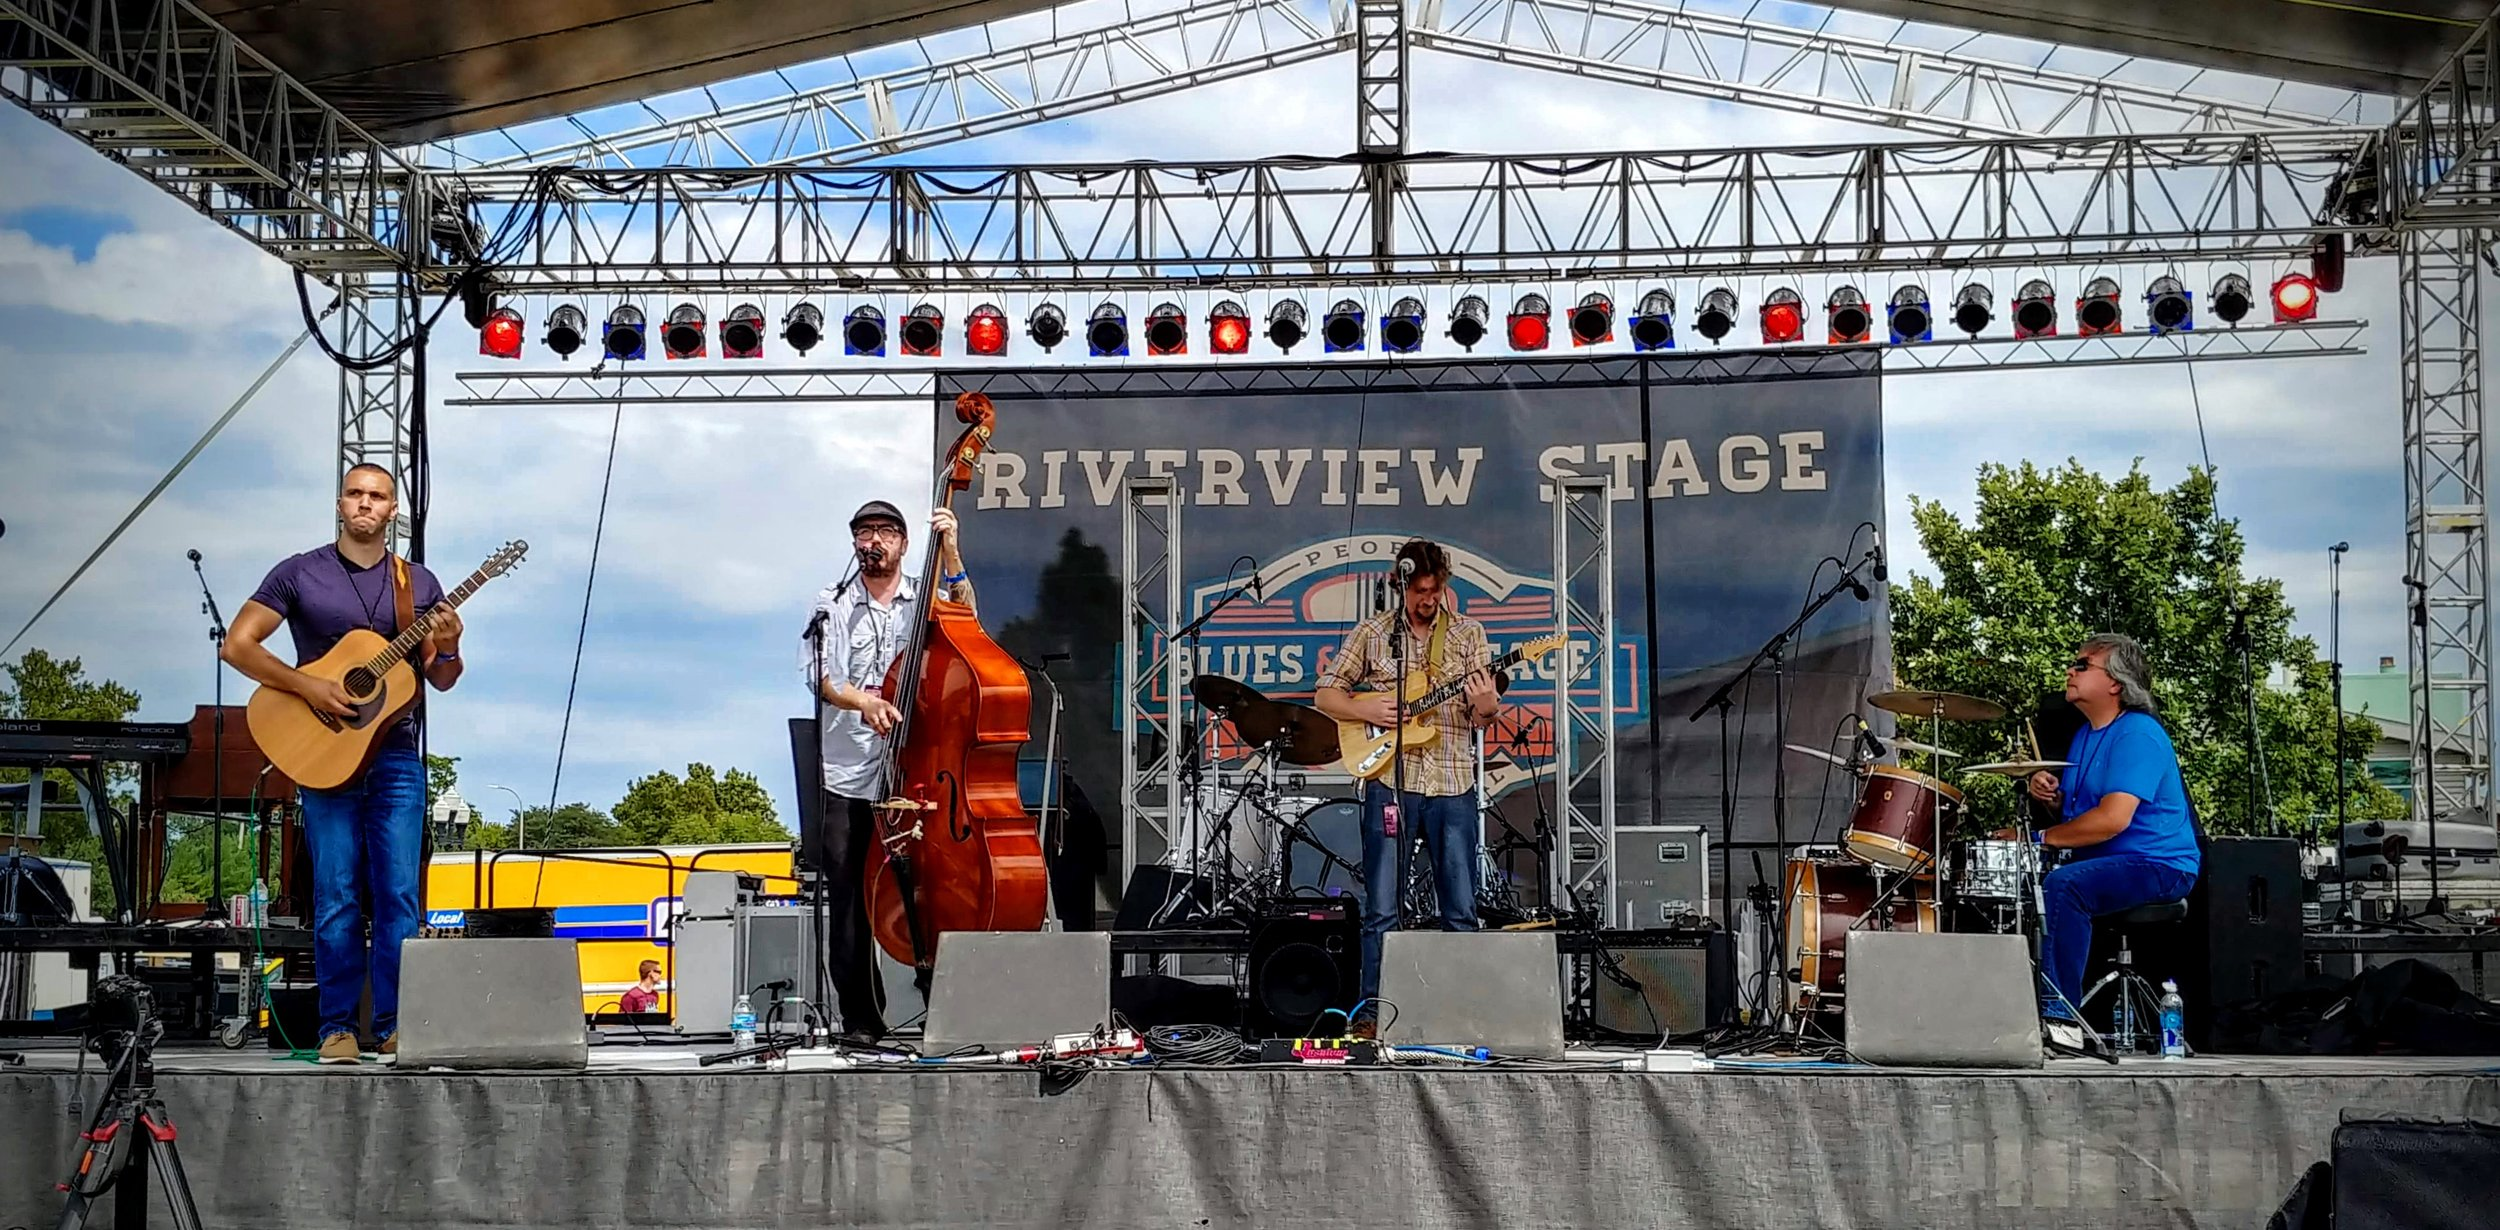 Hollow Down was the first band on the Riverview Stage on Saturday at the Peoria Blues & Heritage Festival. I love when I can make it early in the day and encourage people with great music and letting them know what's happening!